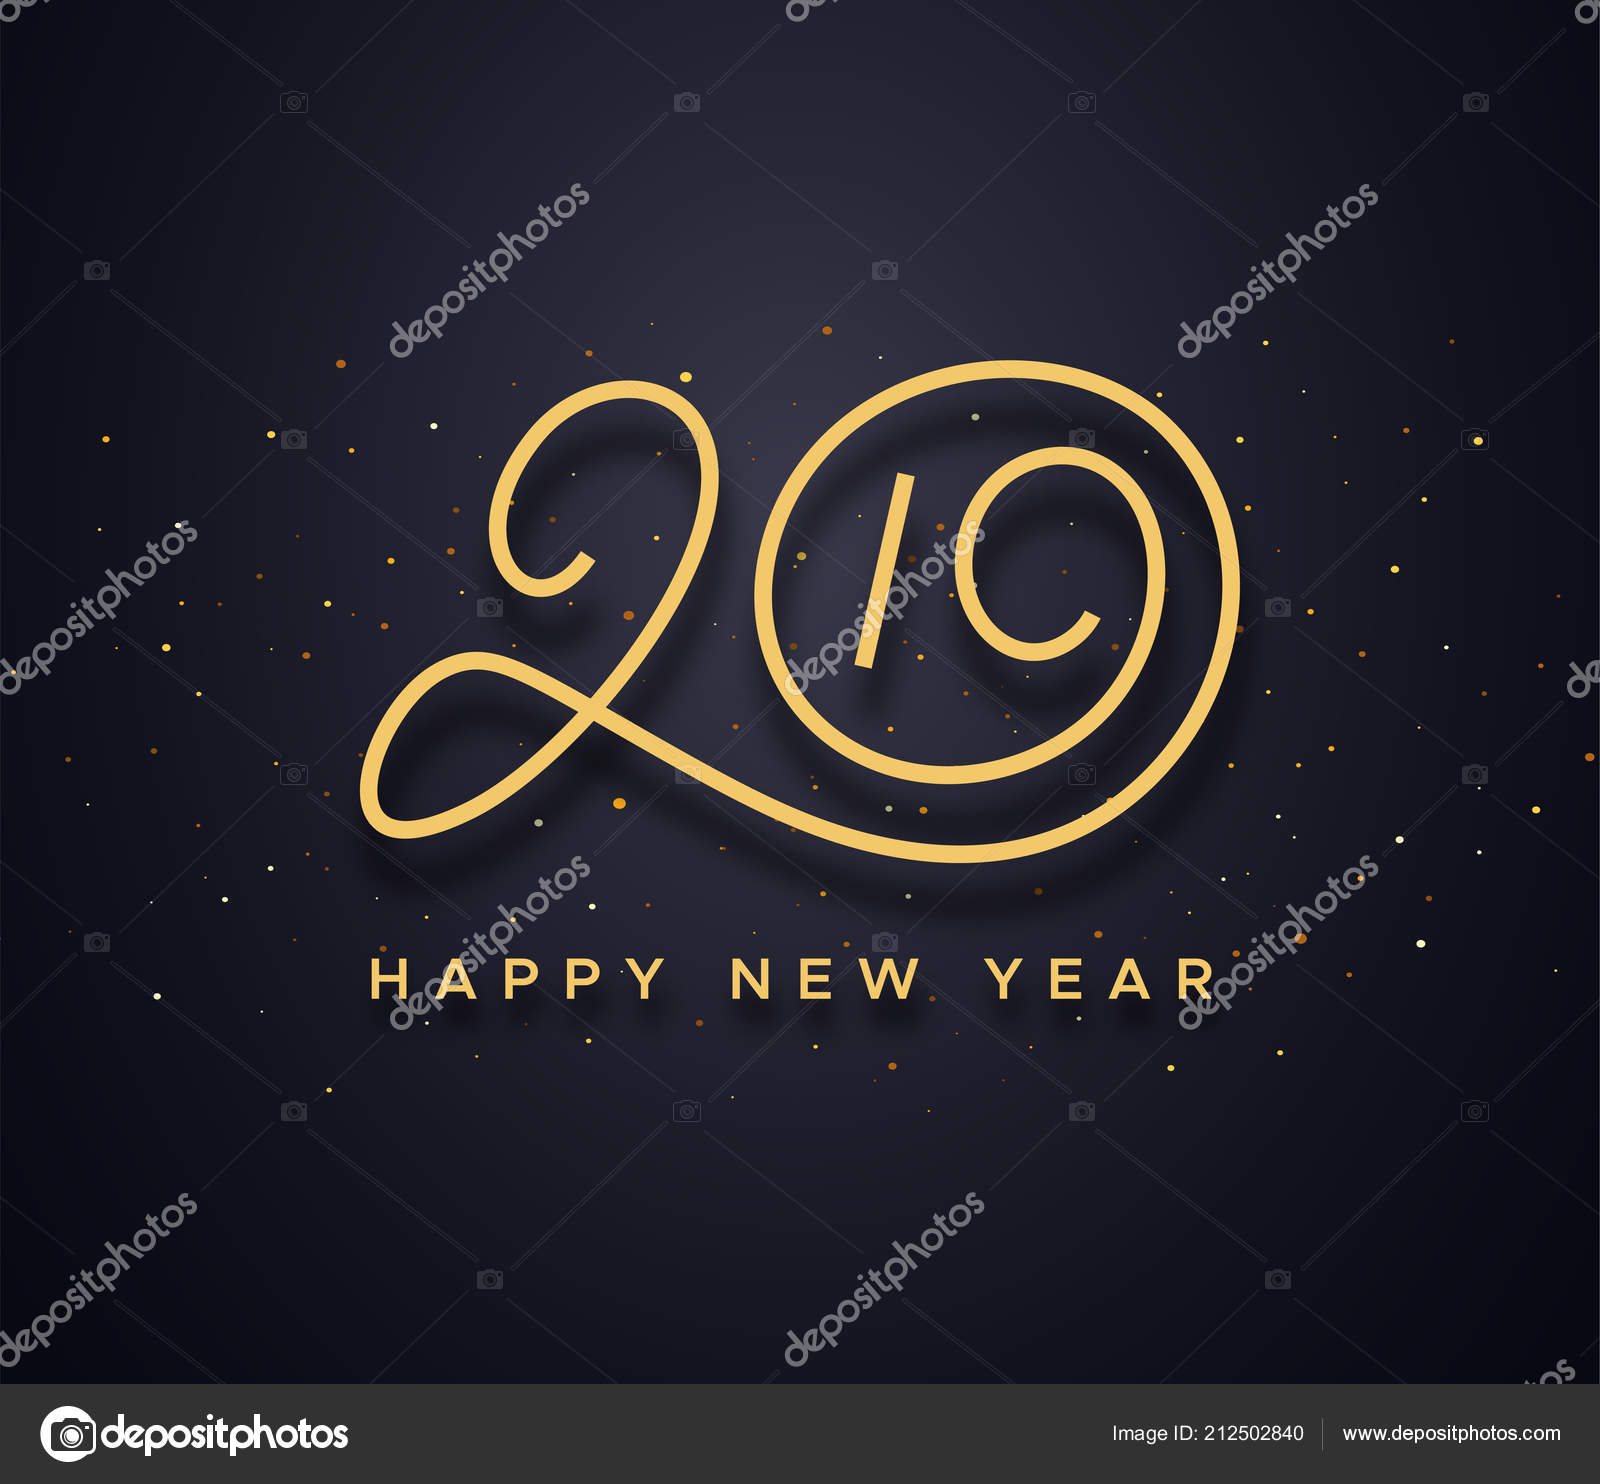 Happy New Year 2019 Wishes Typography Stock Vector C Astartu